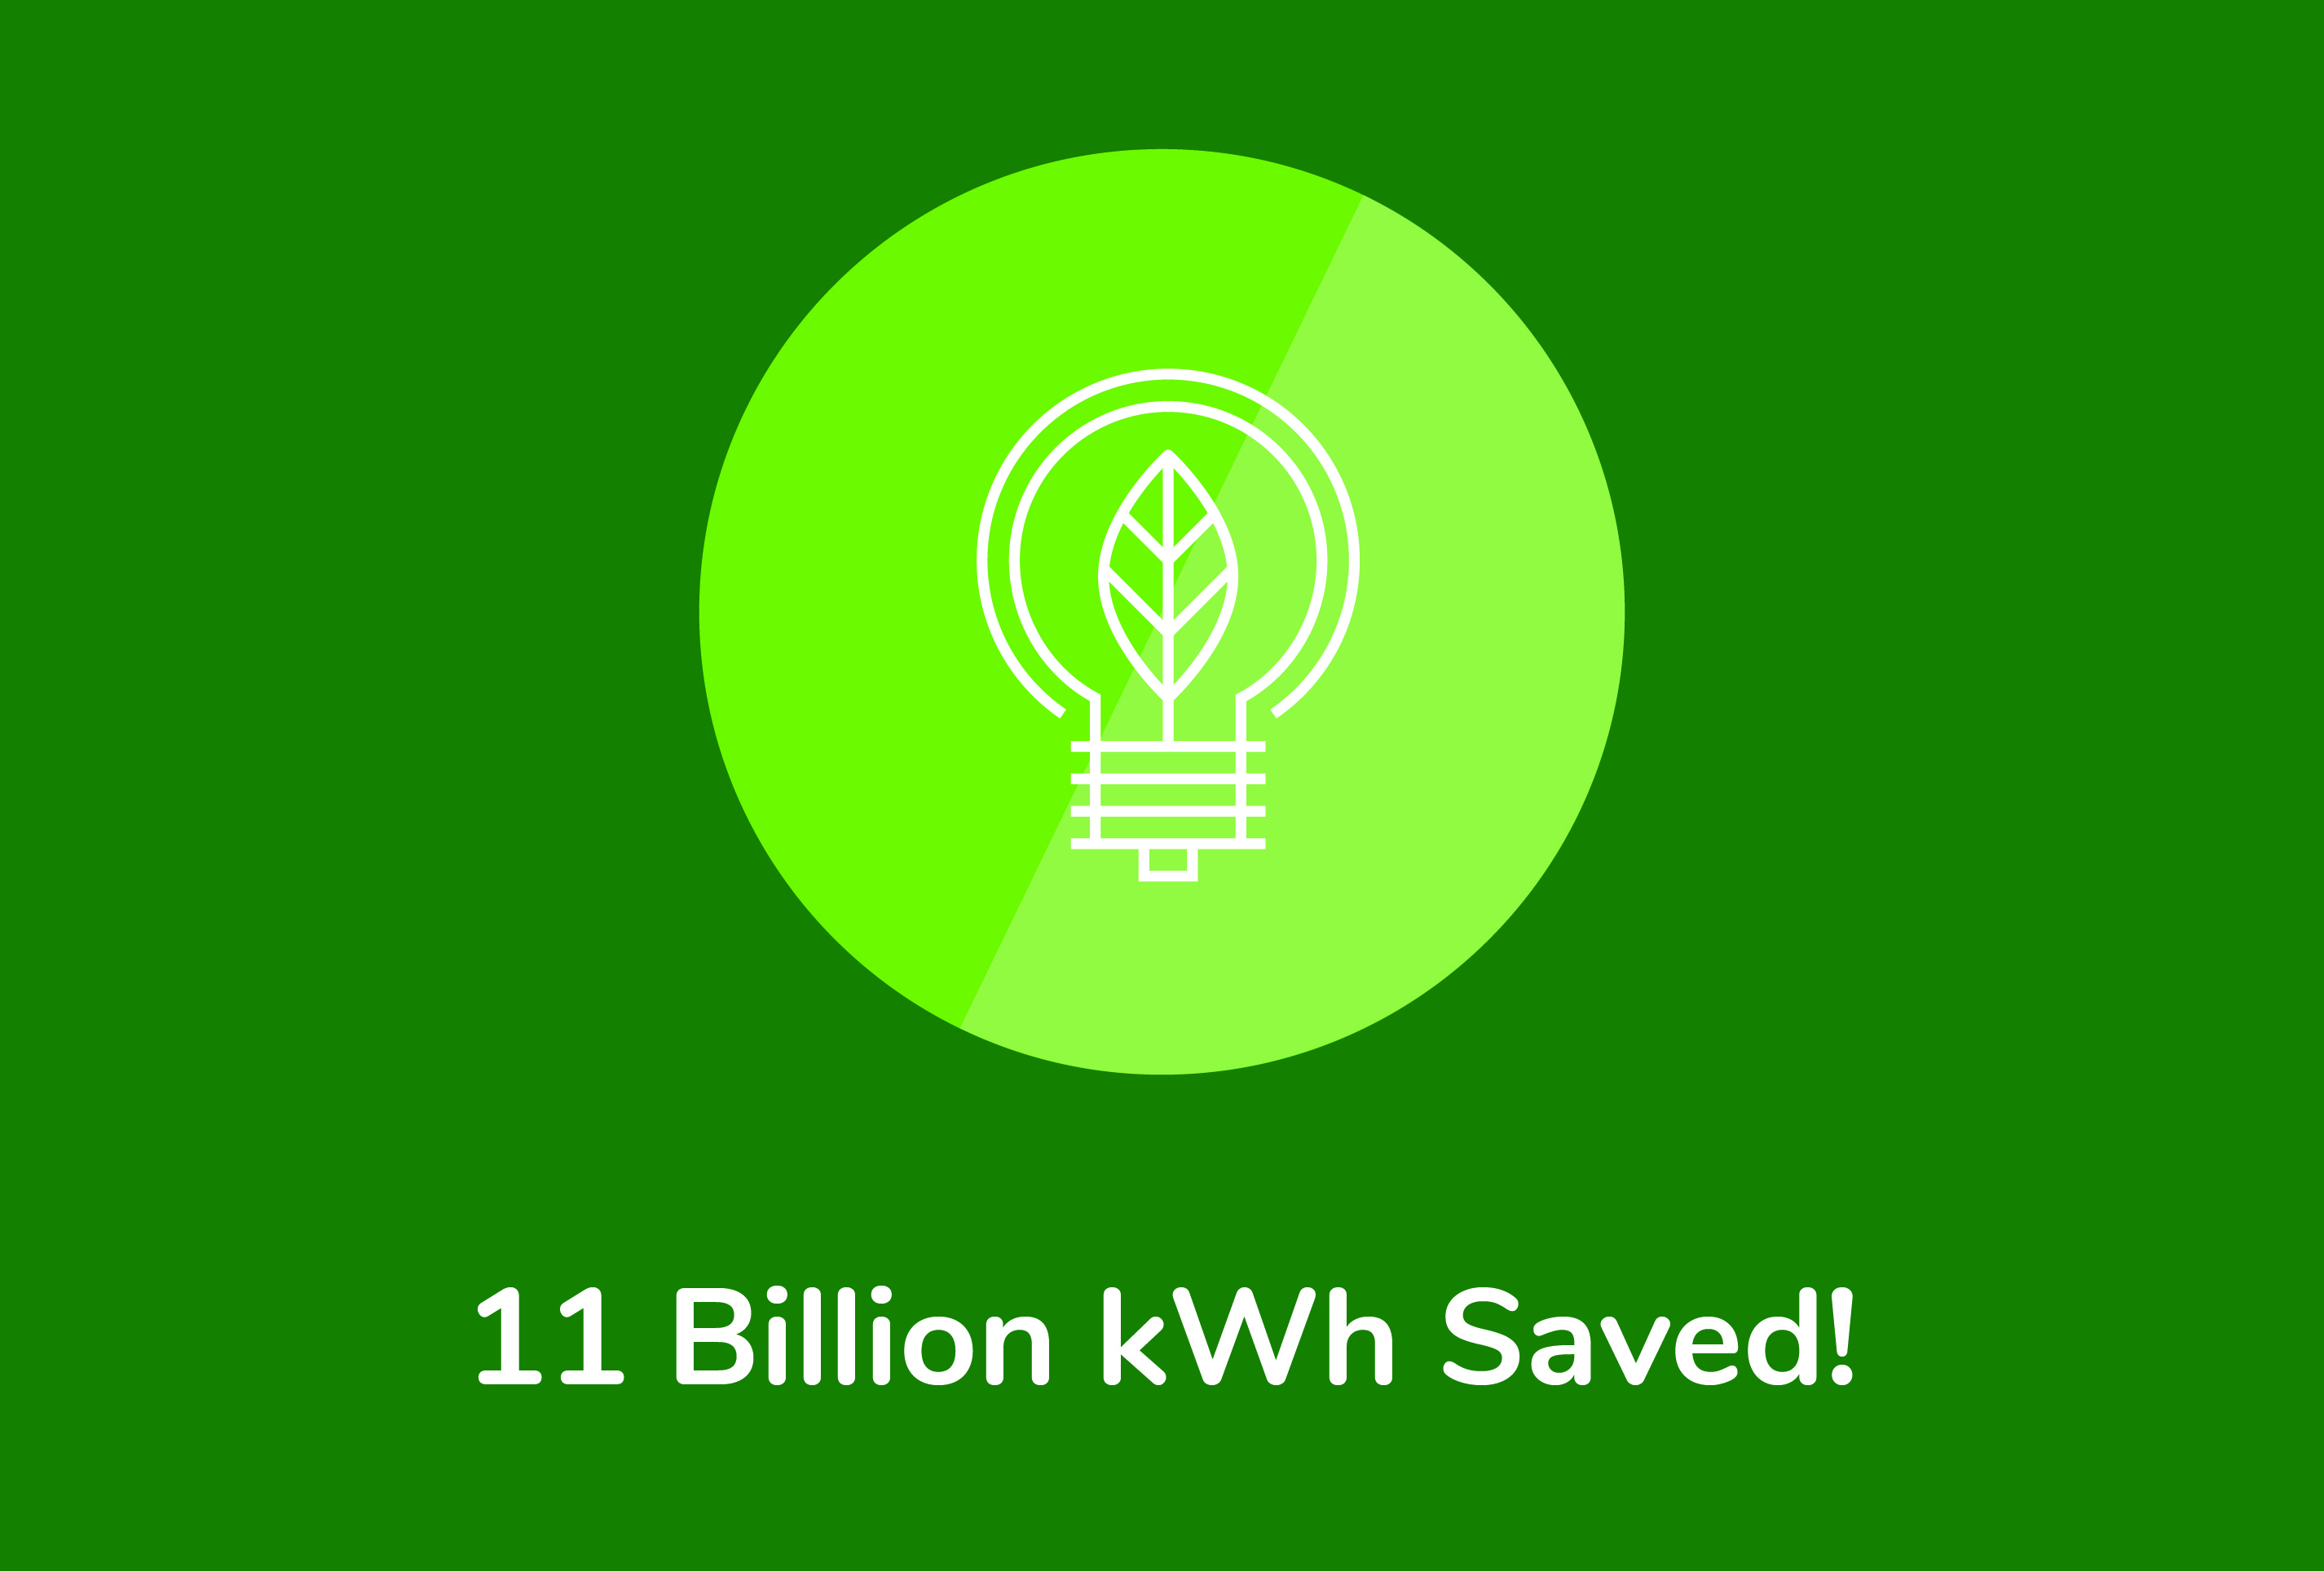 icon with 11 billion kwh text